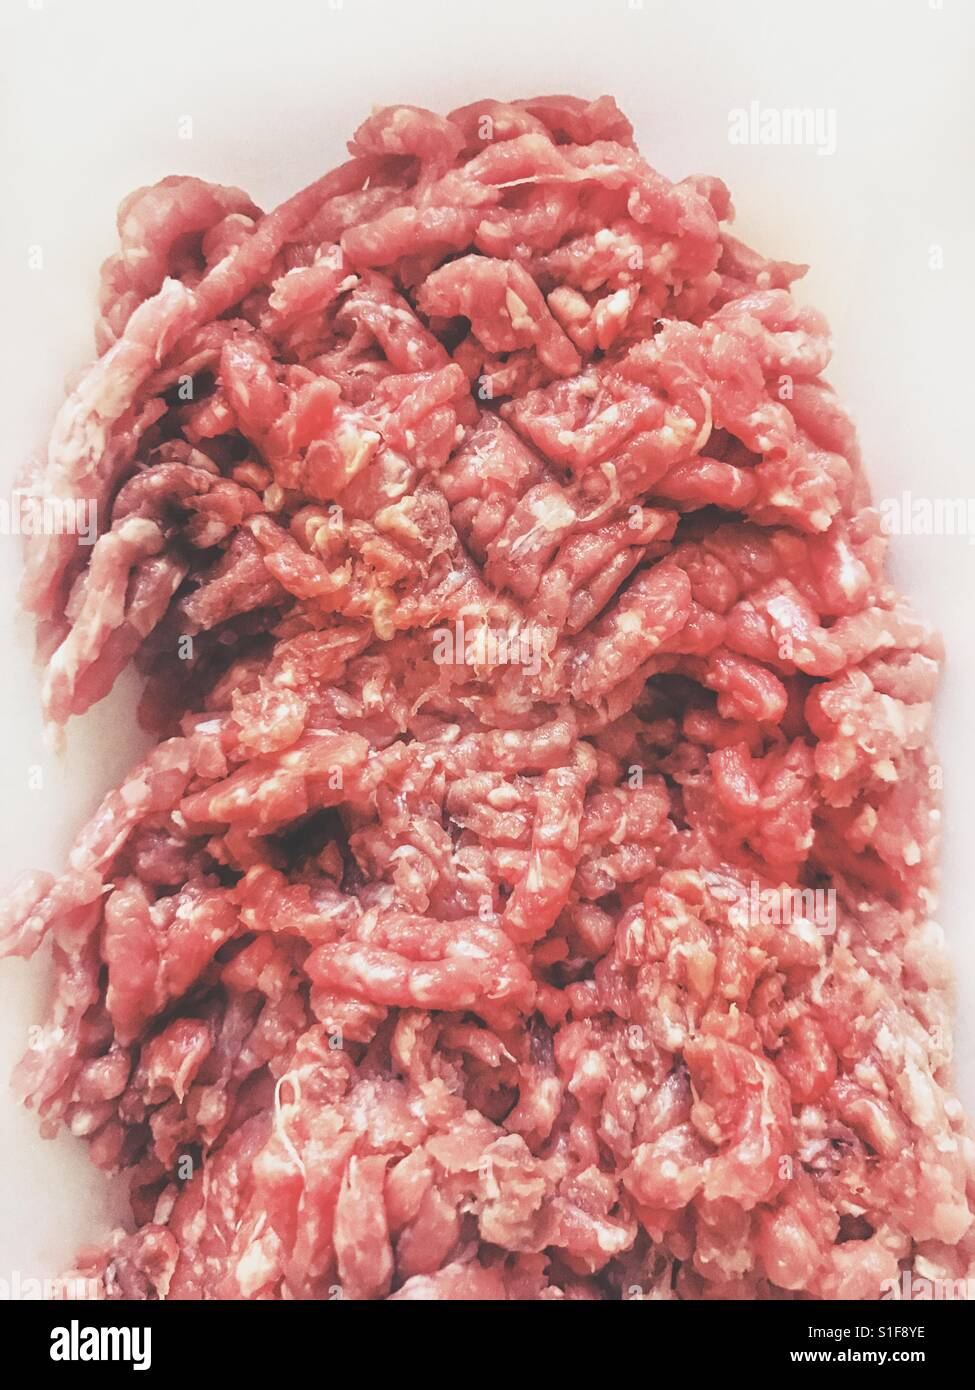 Minced meat - Stock Image